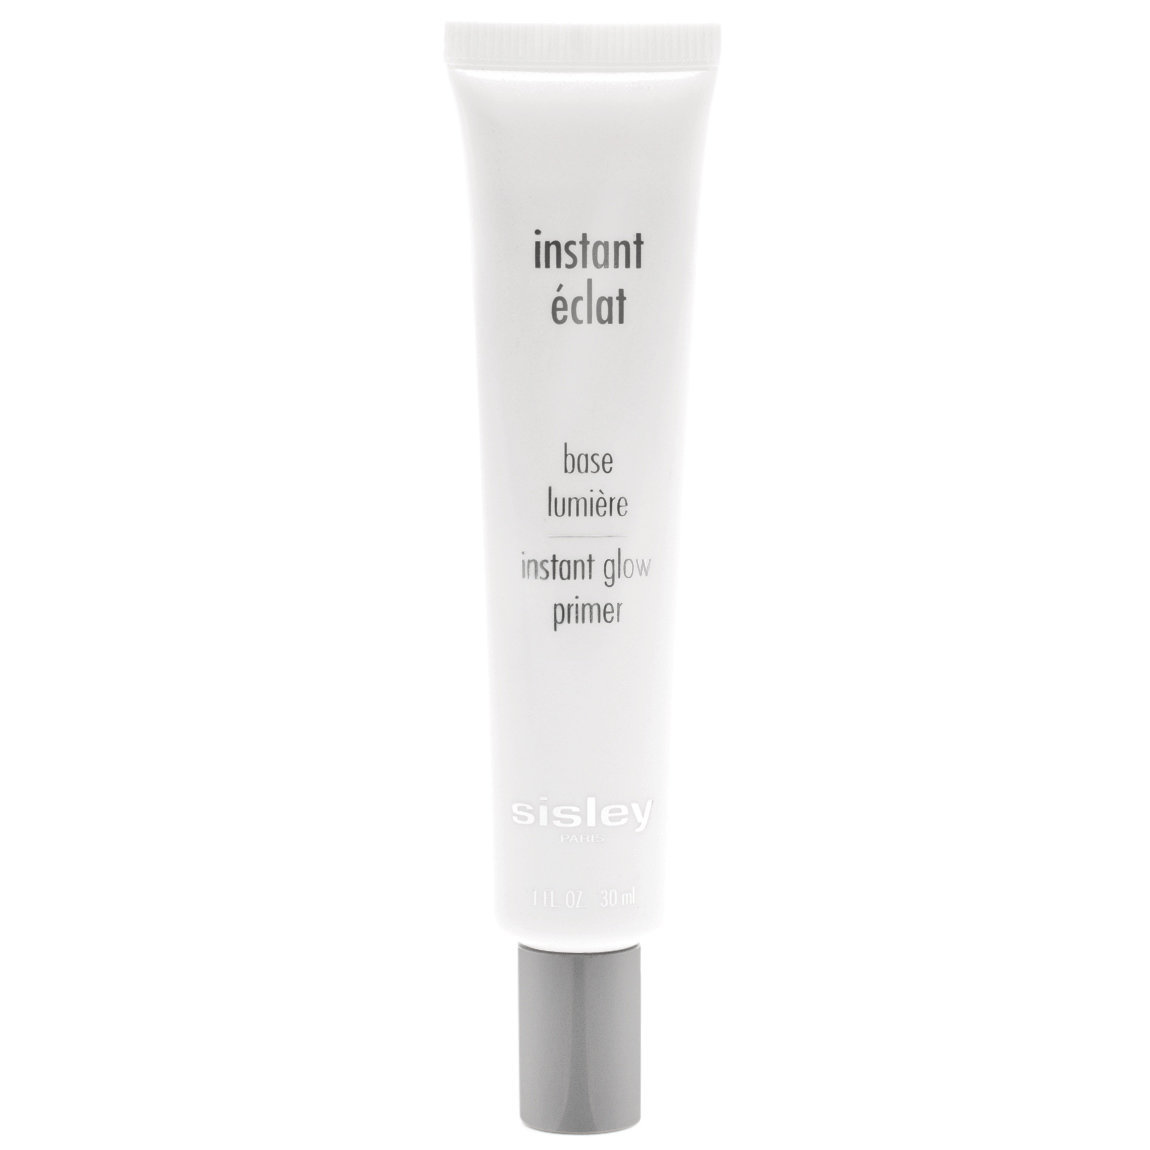 Sisley-Paris Instant Éclat Instant Glow Primer alternative view 1 - product swatch.